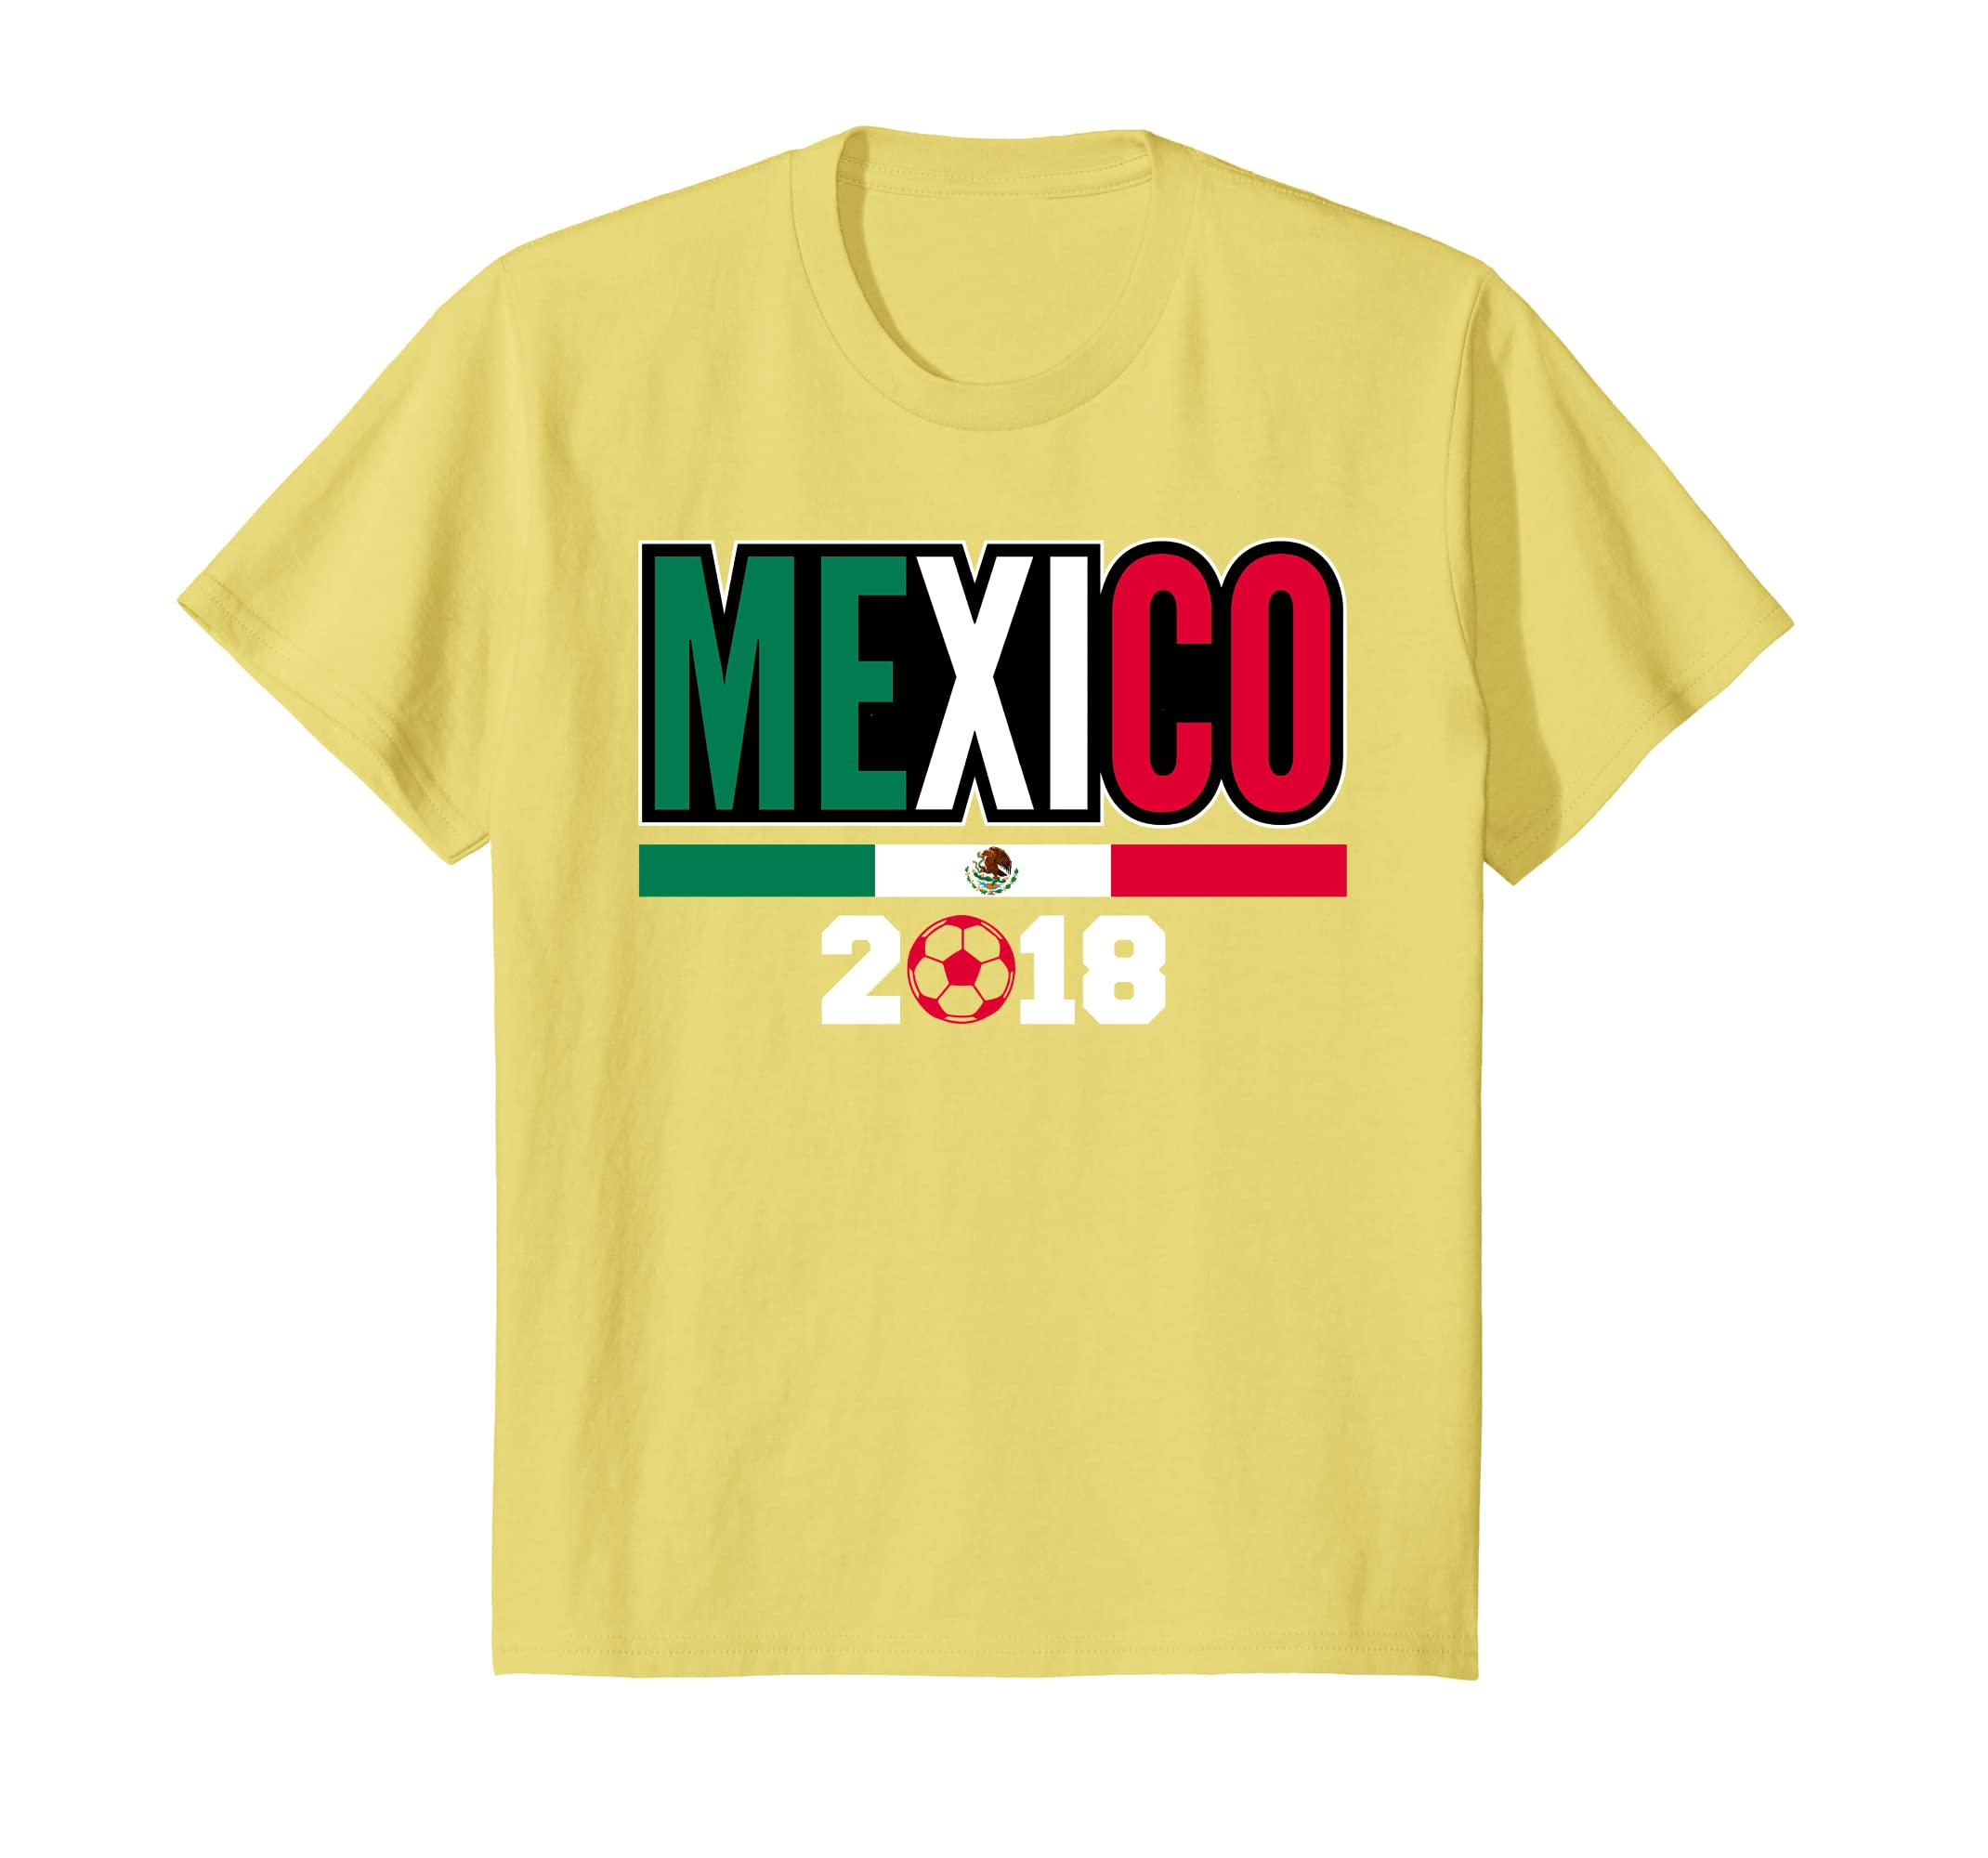 Amazon.com: Mexico Shirt 2018 Soccer Women Men Kids - Cheer Jersey Shirt: Clothing